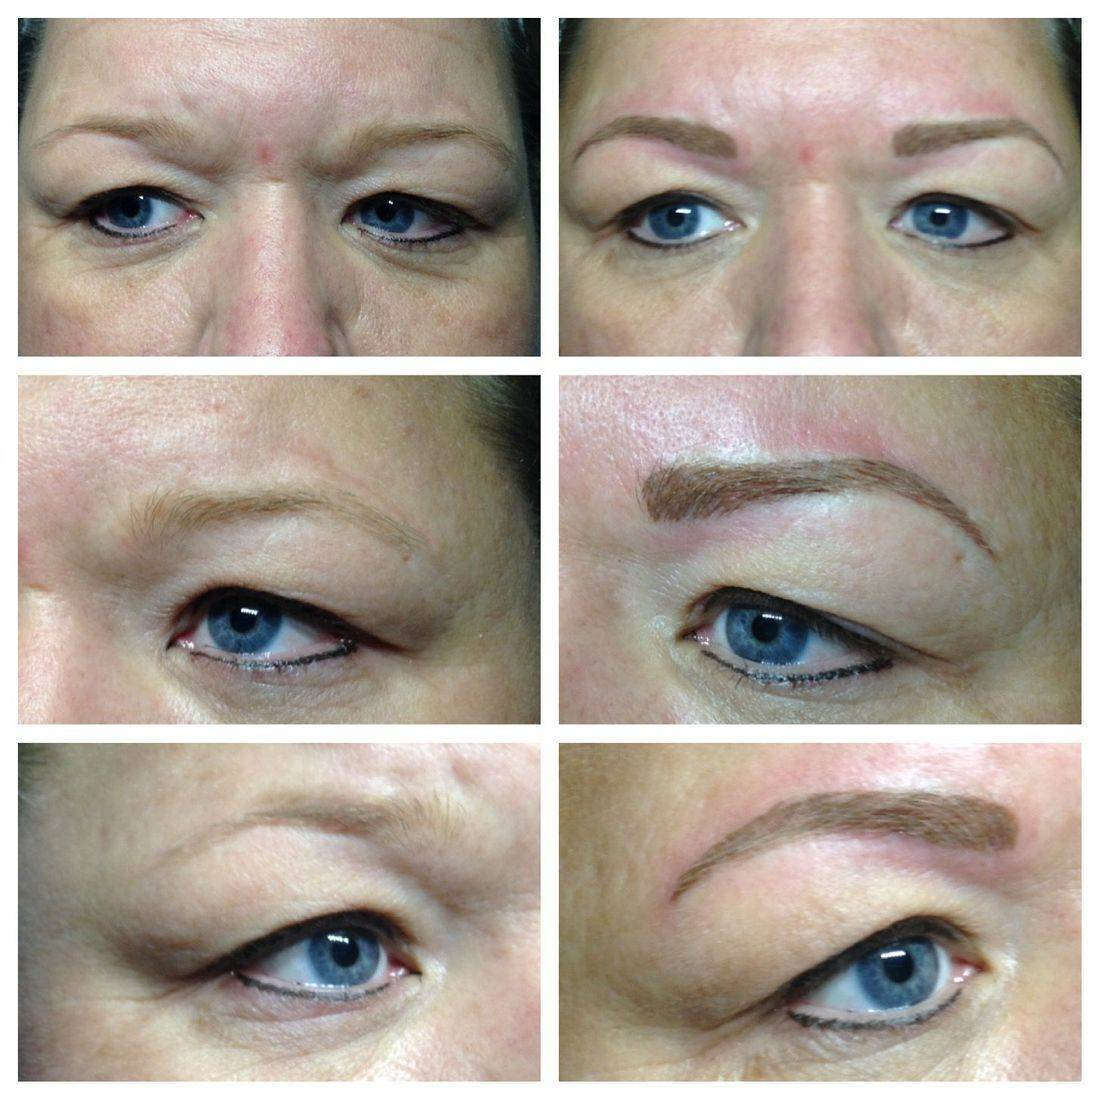 permanent makeup, cosmetic tattooing, micropigmentation, micro-blade, hair stroke, eyebrows, brows